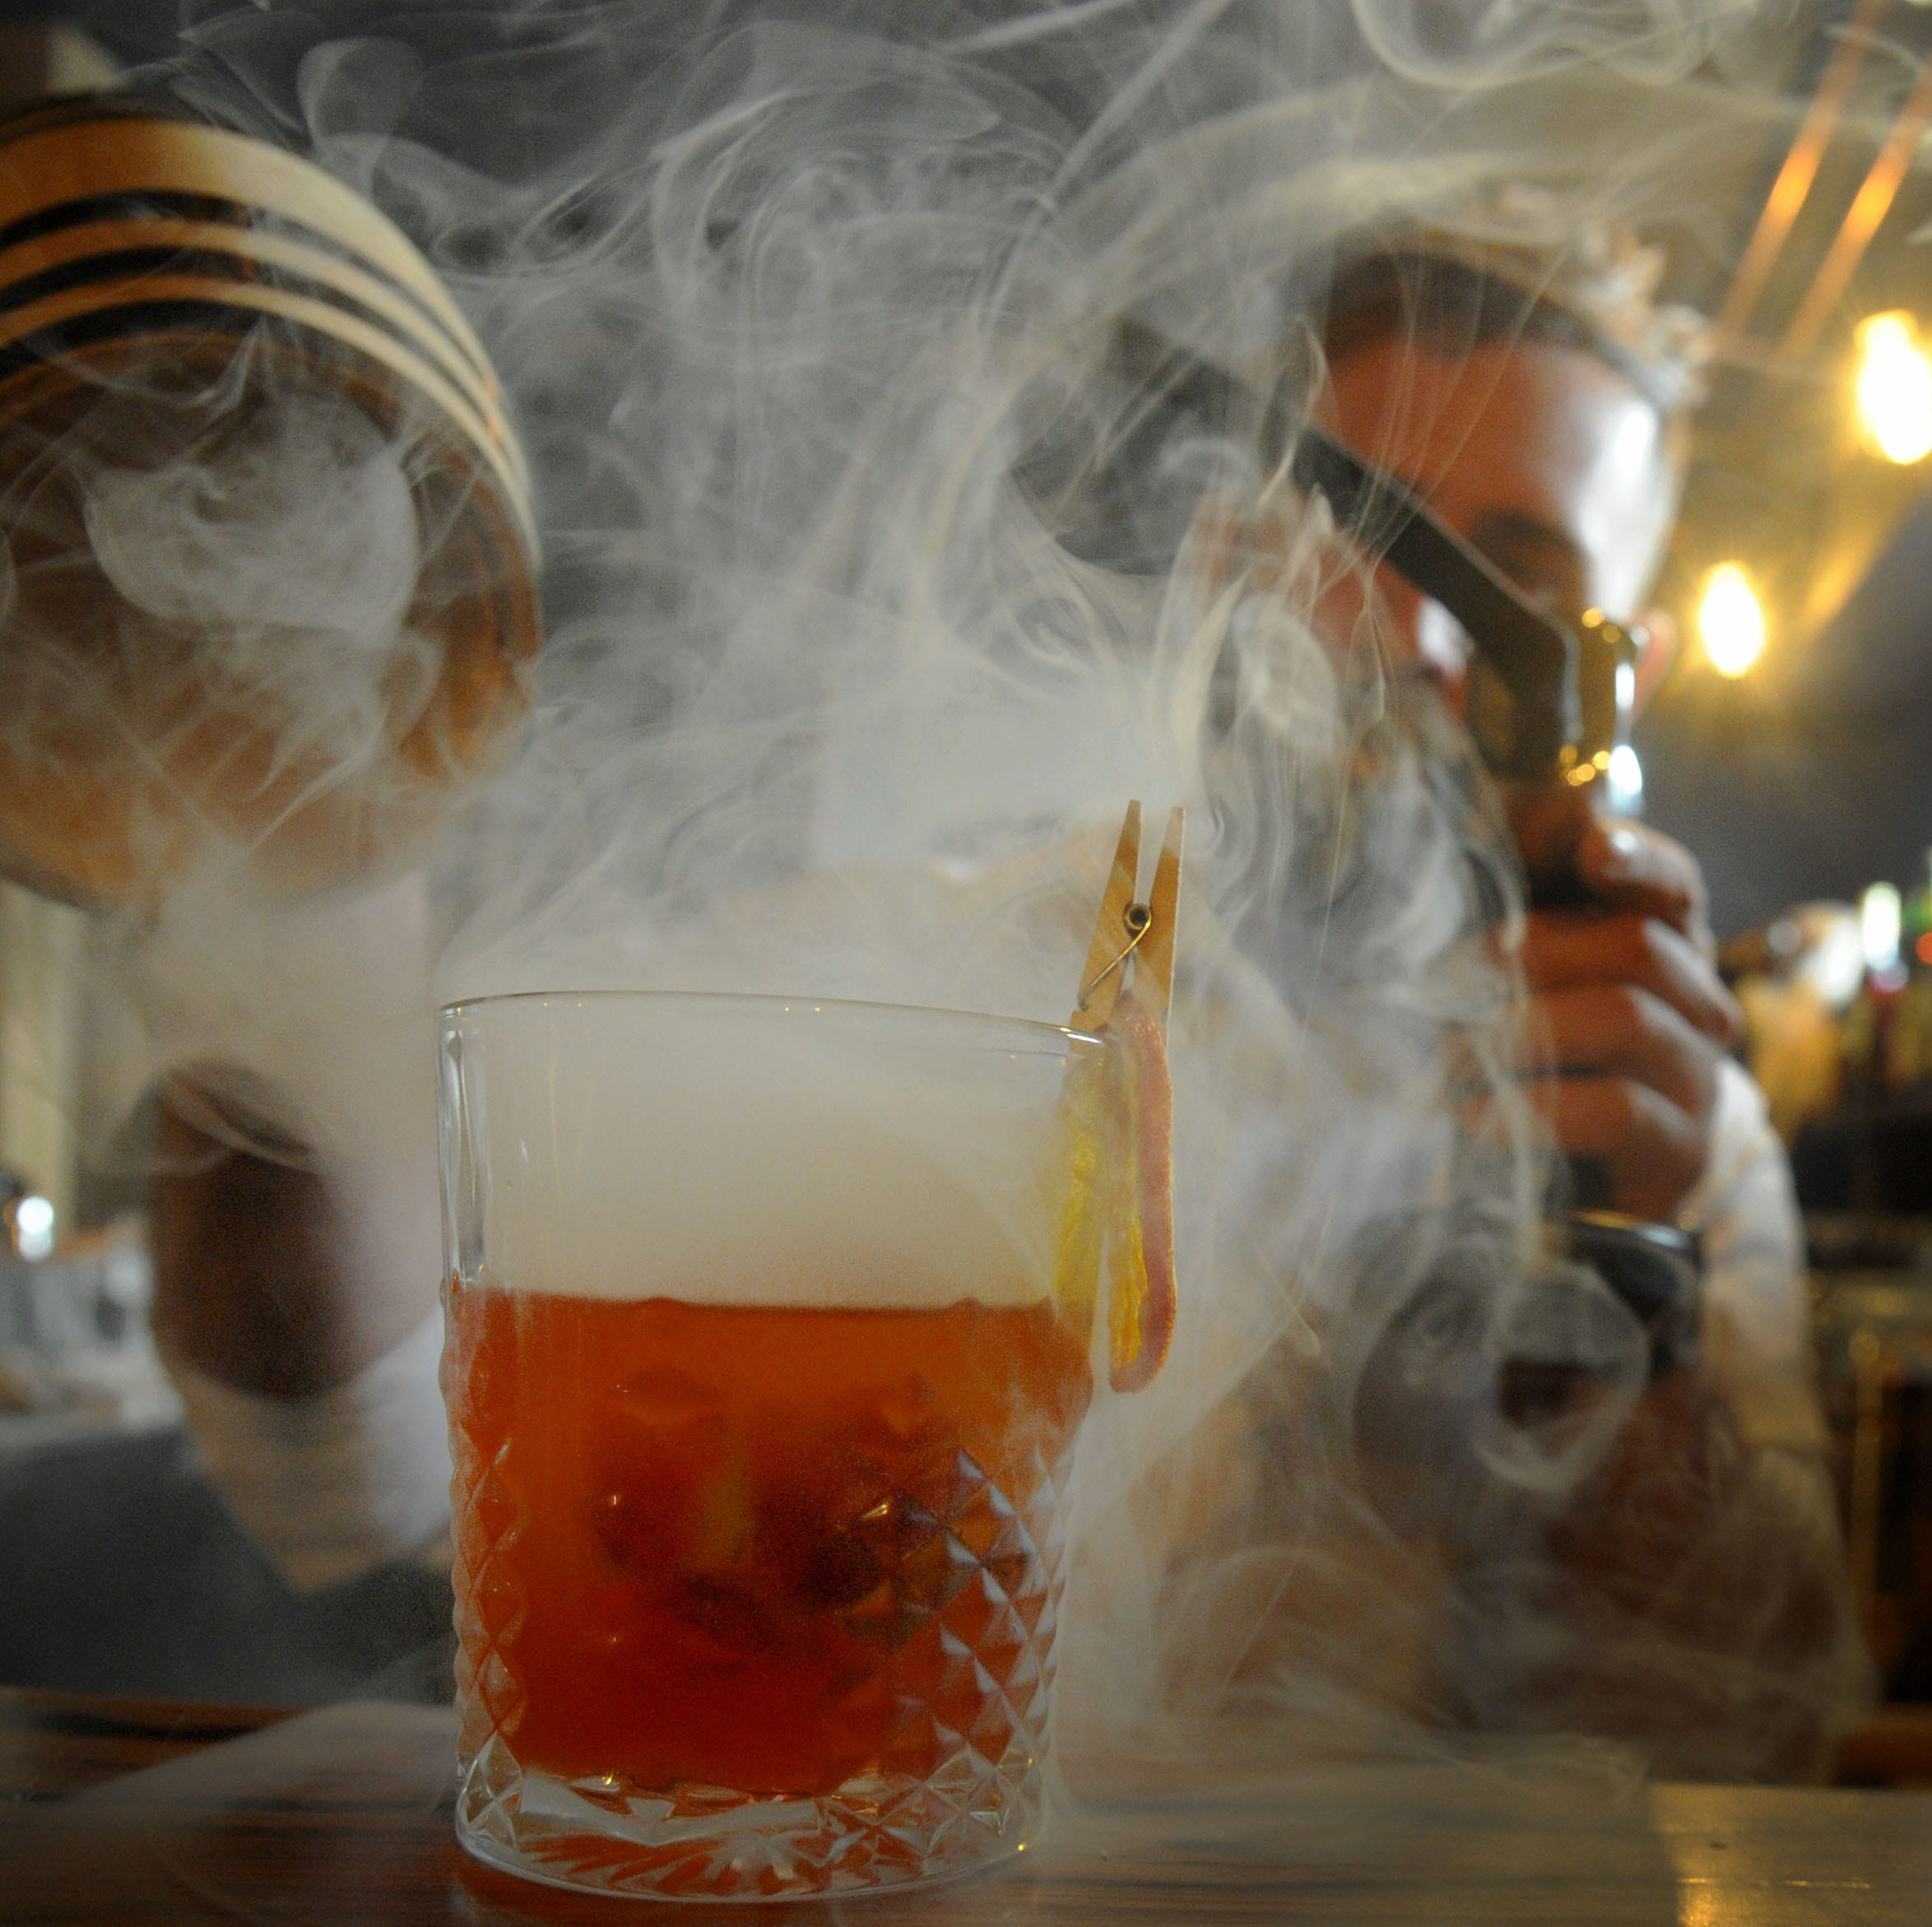 Cafe Society: Oak & Iron brings local flavors to craft-cocktail scene in Thousand Oaks